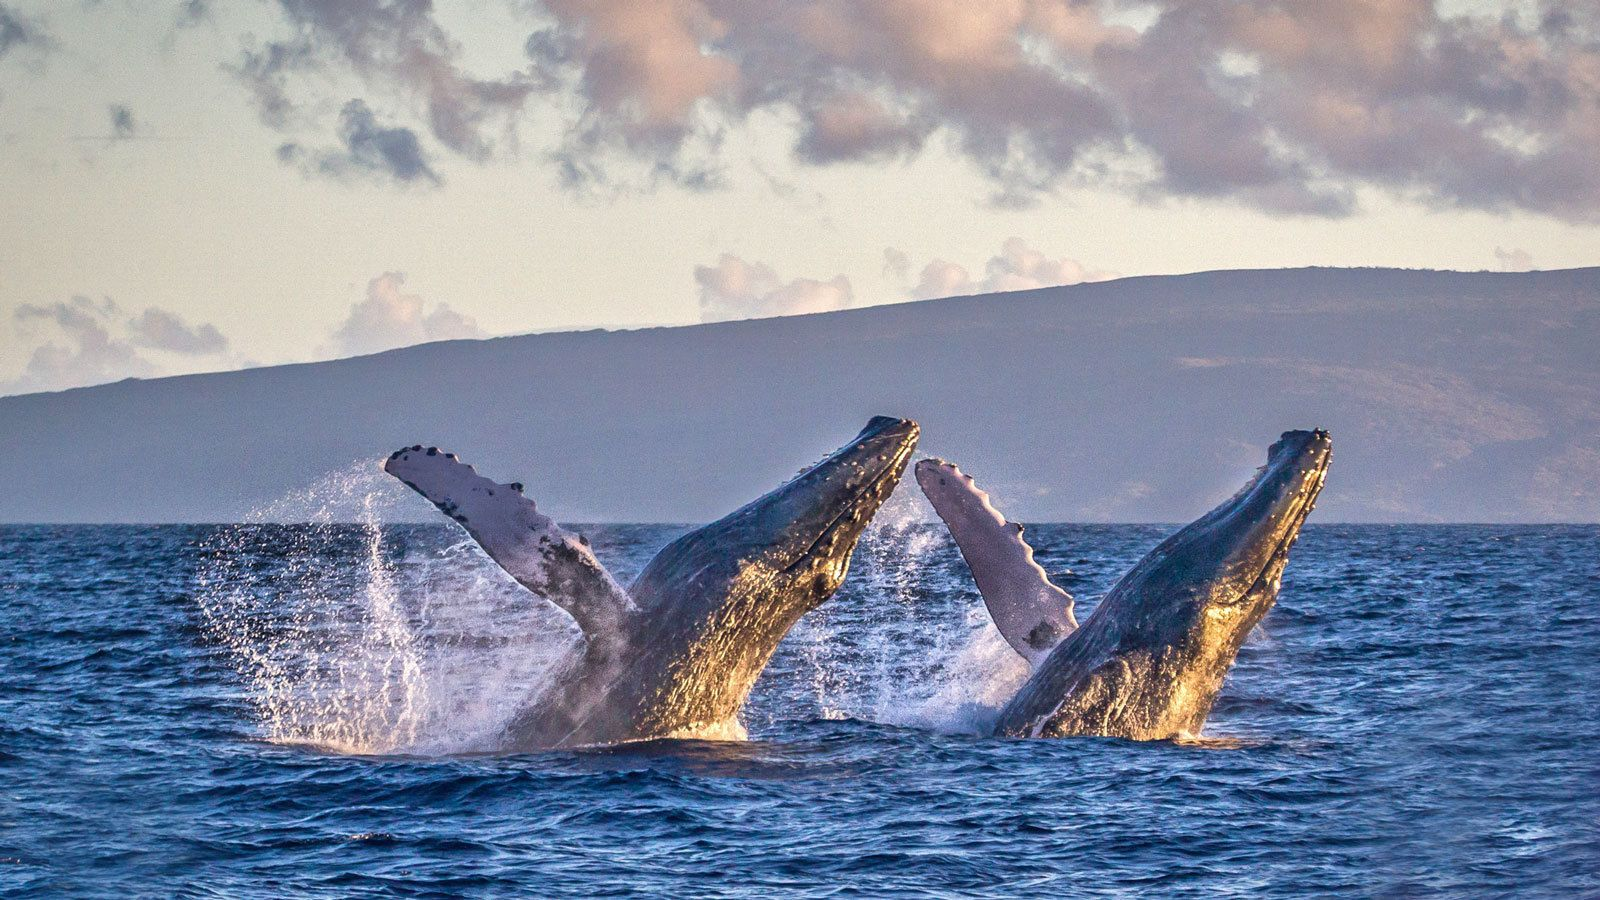 Two humpback whales breach in perfect unison in the waters off Lahania